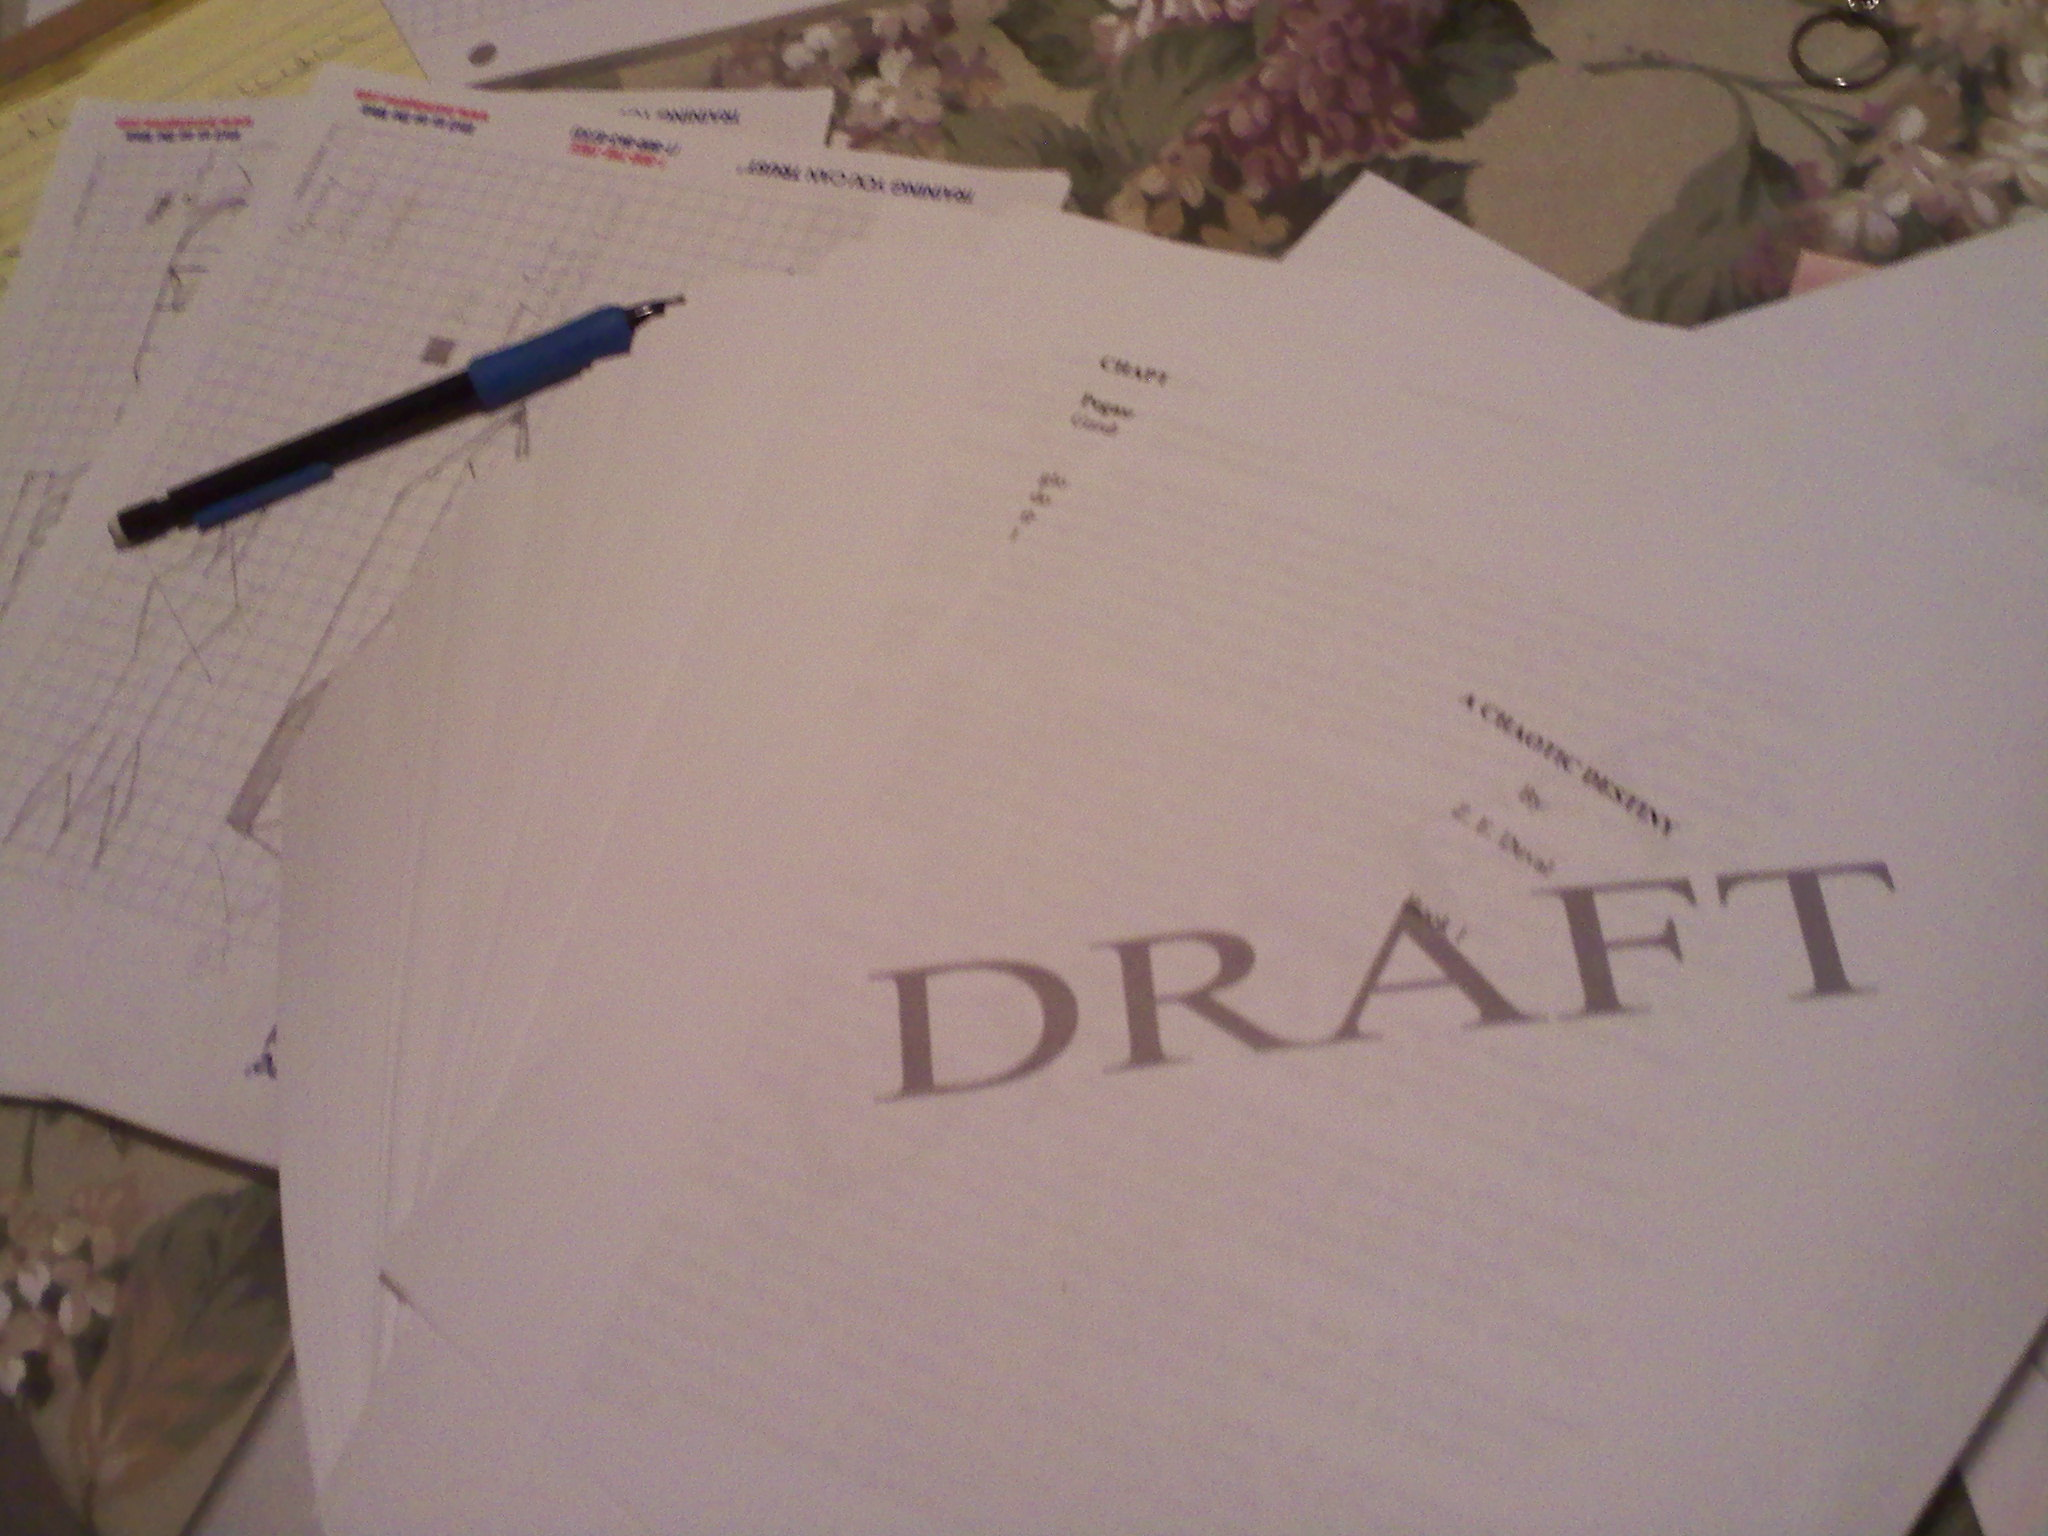 """The first printed draft of """"A Chaotic Destiny"""" circa Jan 2013. Note terrified graph paper in the background."""